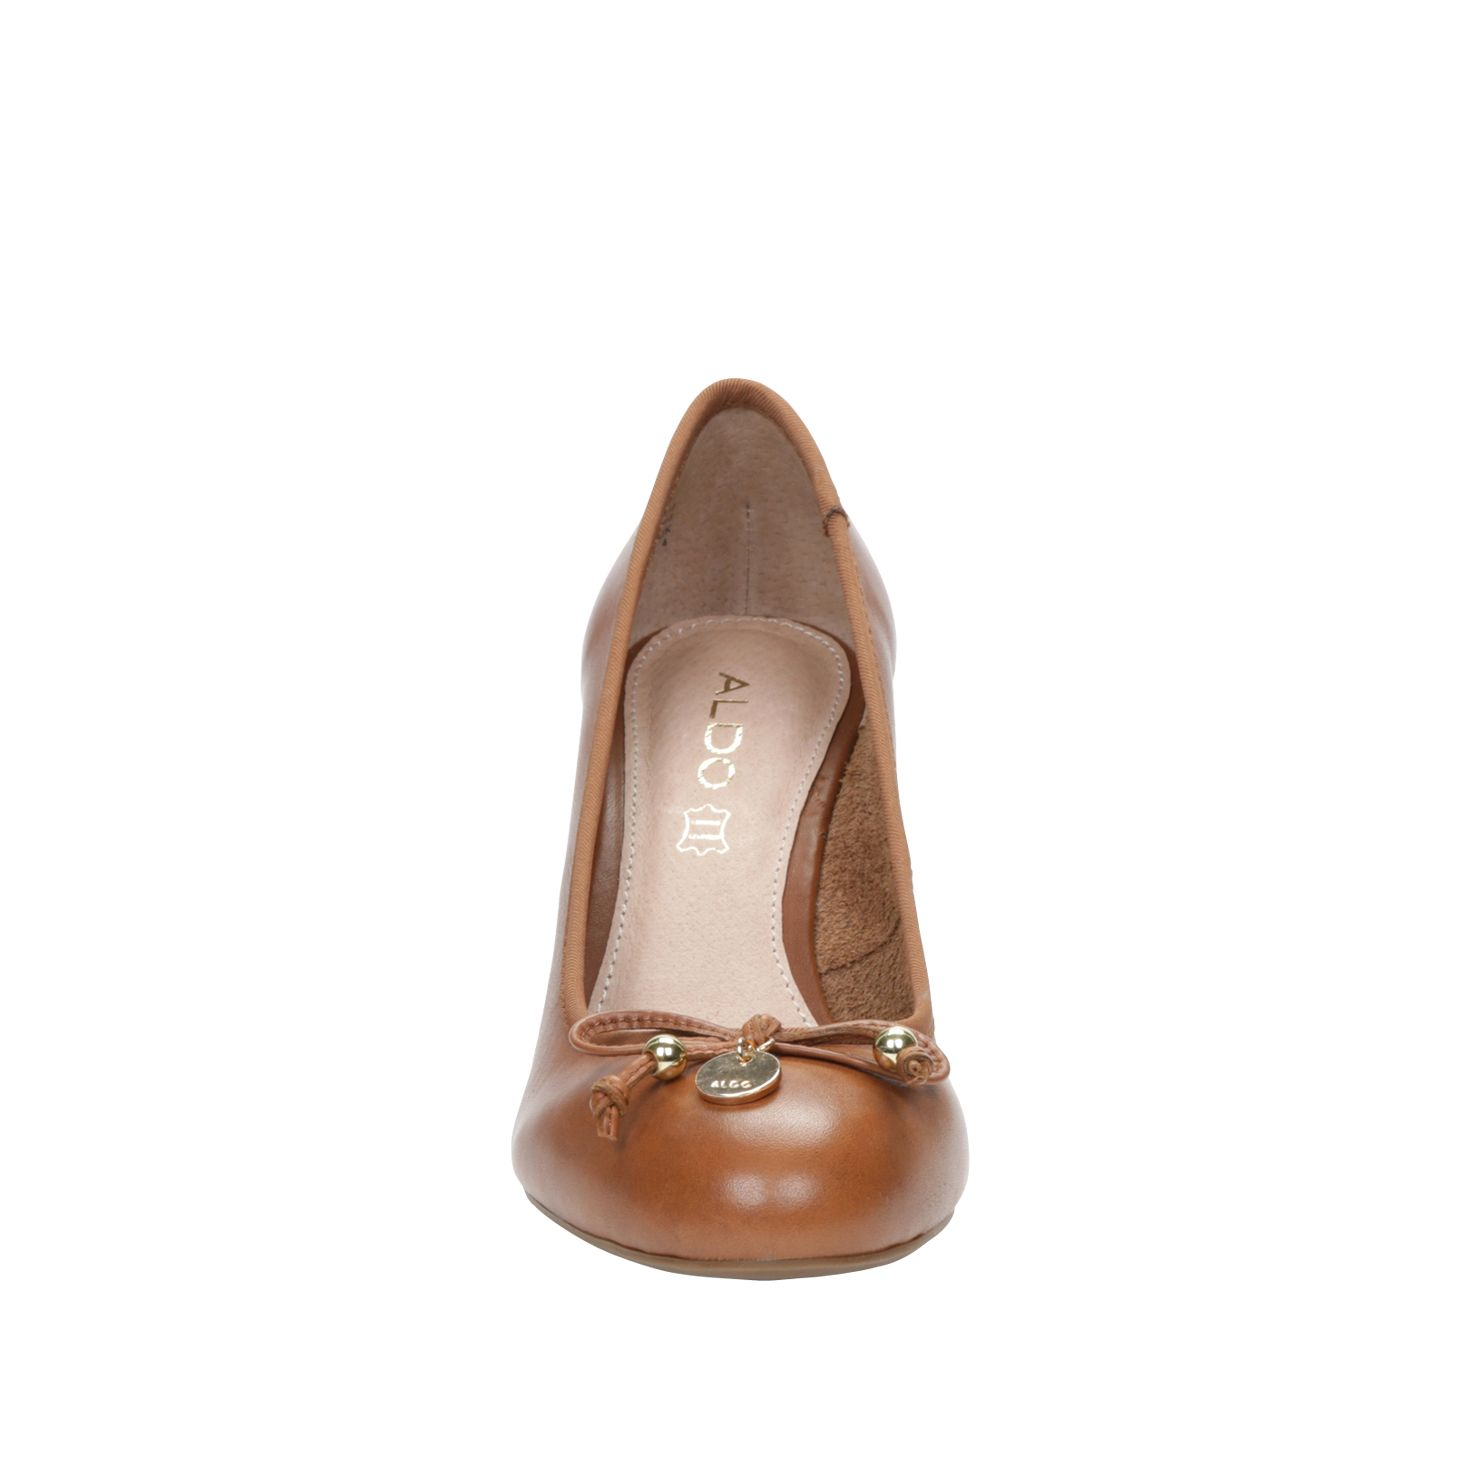 Agrarwen round toe wedge ballerina shoes